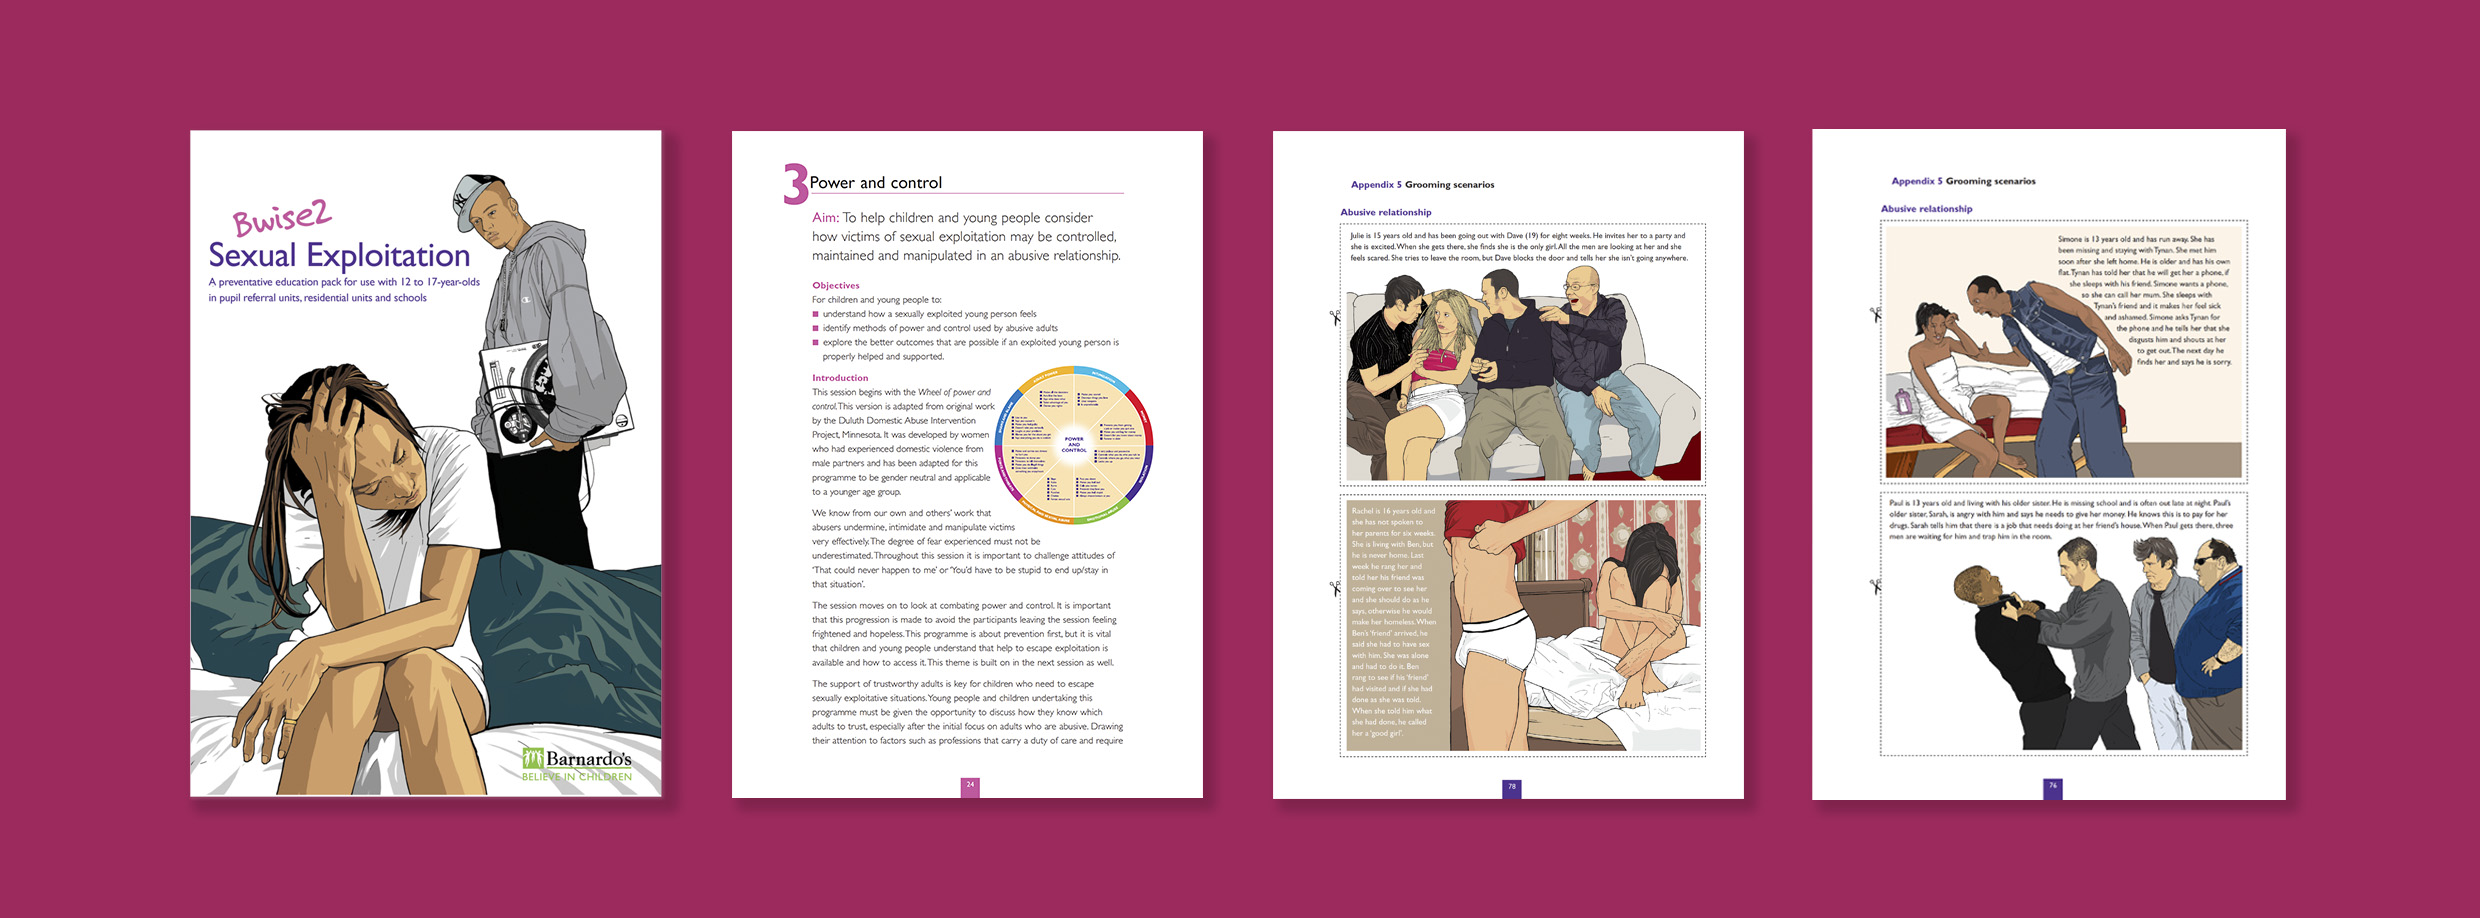 Barnardo's' Preventative Education Pack provides explicit guidelines for care workers working with 12 to 17 year-olds.